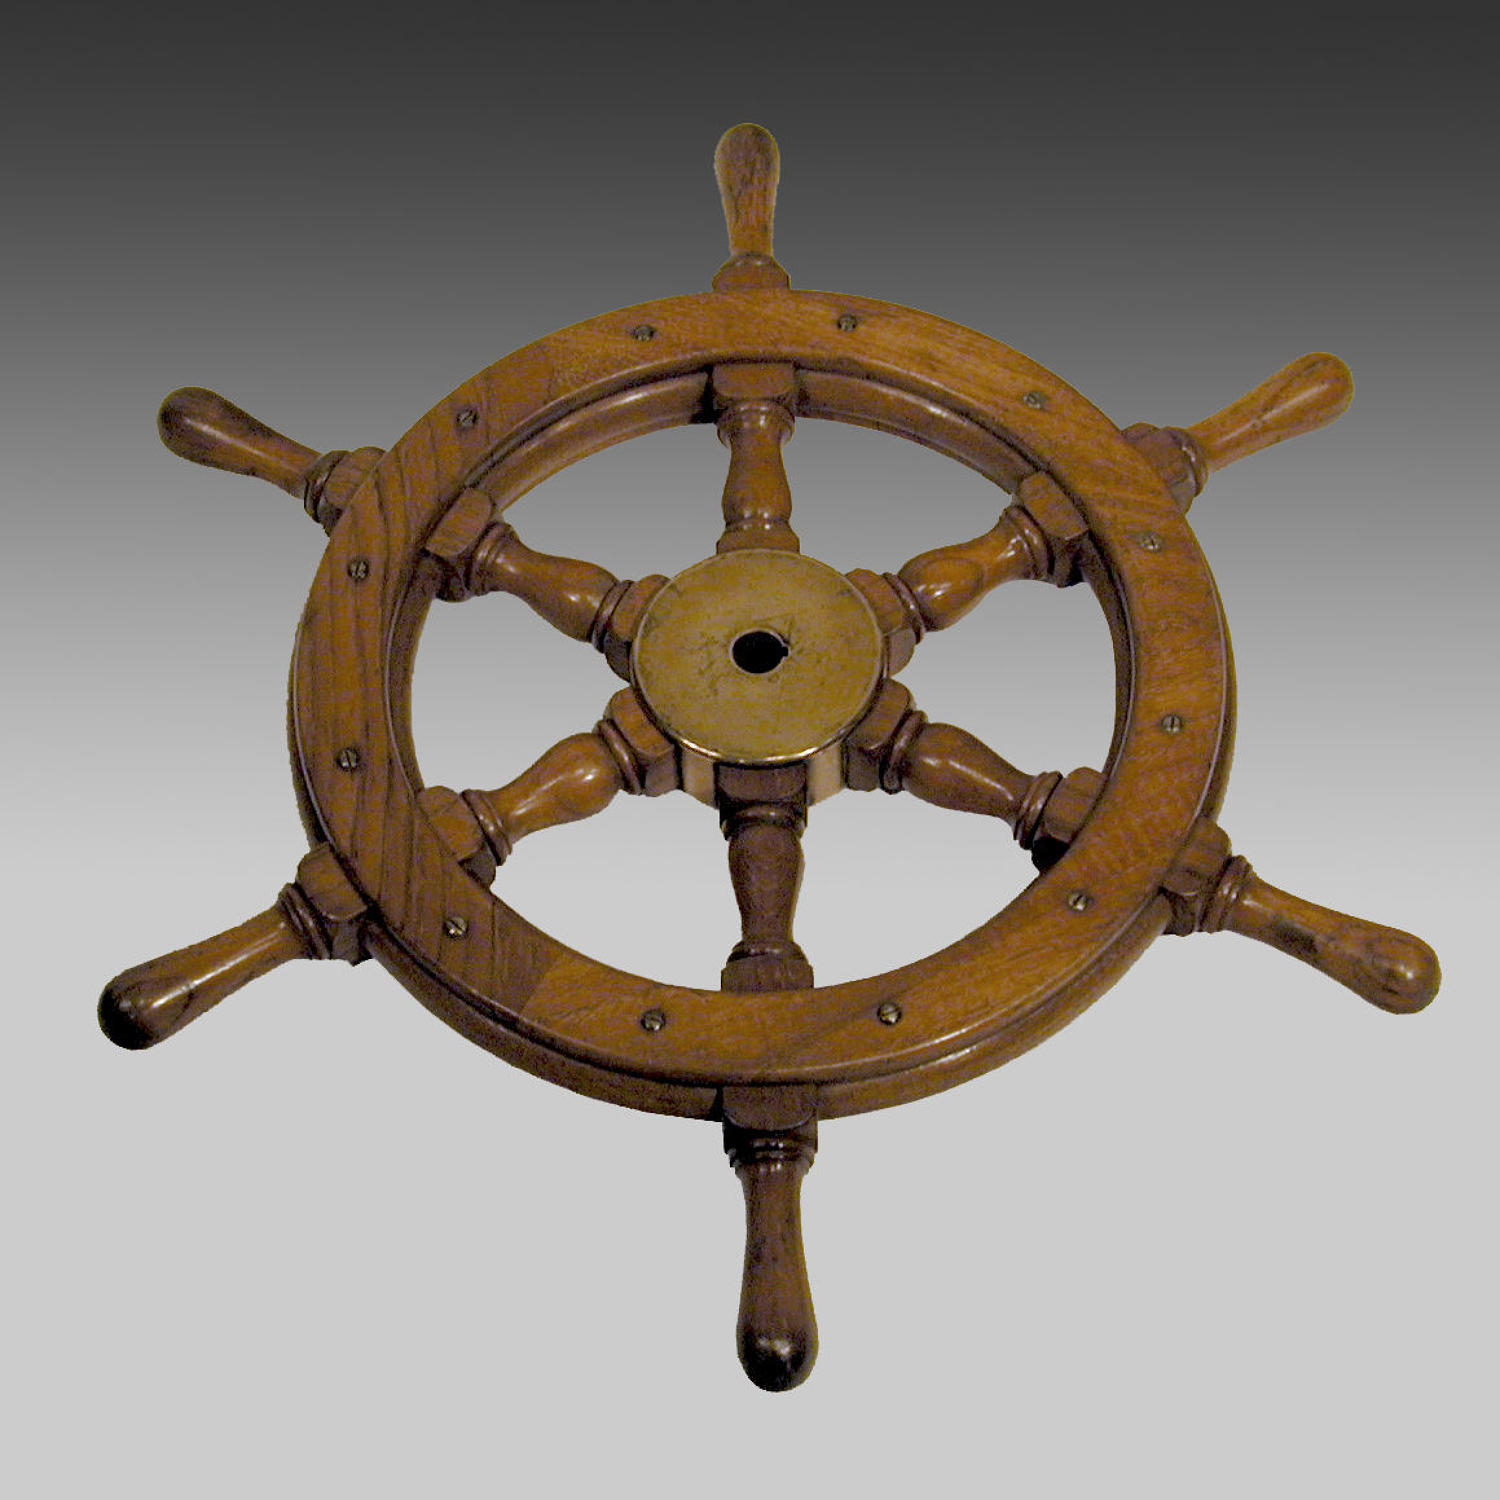 Padouk and bronze mounted ship's wheel.